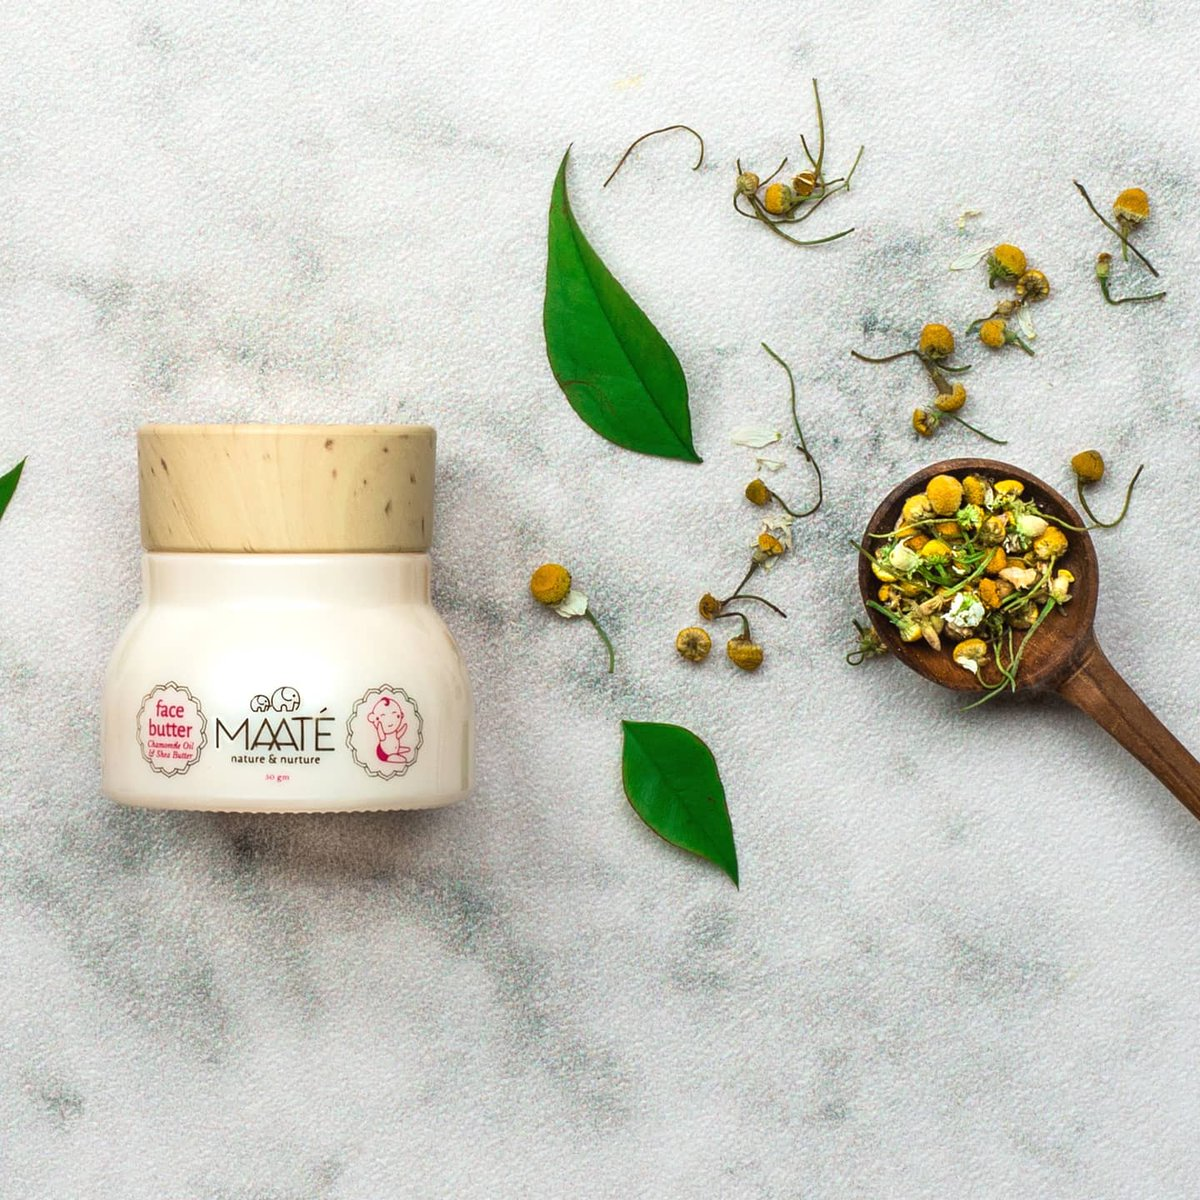 #Autumn and the onset of winter can cause your baby's tender facial skin to become extra chapped and dry. Give your baby the deep moisturising care of #MAATÉ's Baby Face Butter enriched with Antibacterial Chamomile Oil, and nourishing Shea Butter.